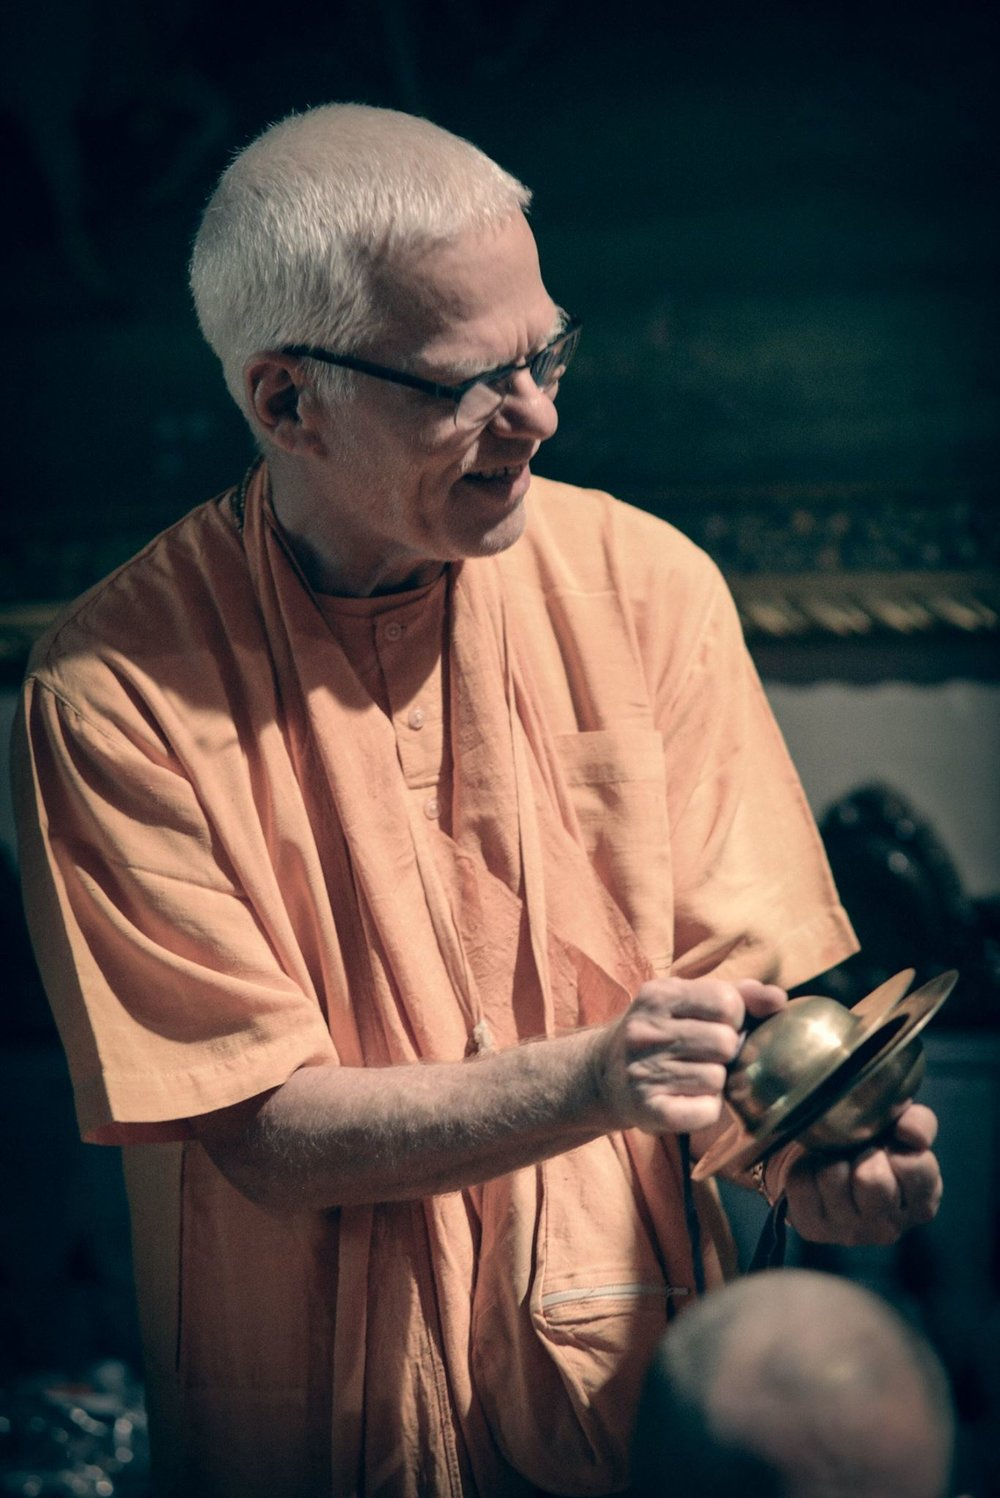 HH Rtadhvaja Swami - Maharaj's true passion has been taking care of the youth of our society. For seven years, he ran the Vaisnava Academy for Boys in Alachua, Florida. From 1990 to 2003, he traveled with groups of boys to Ratha Yatras all across the U.S., and in 2004, took a group of youth to Europe. His preaching has taken him all over the world, however, he concentrated his efforts in Texas, Europe and Asia. For the past few years, Maharaja has been spending all of his time in the United States, traveling between Florida, Tennessee and Texas. Maharaja's open and friendly nature not only draws the youth to him, but attracts and inspires the devotees wherever he goes. His humorous, practical, and down to earth preaching style is appreciated by all who meet him.We are SO excited to have him this year!